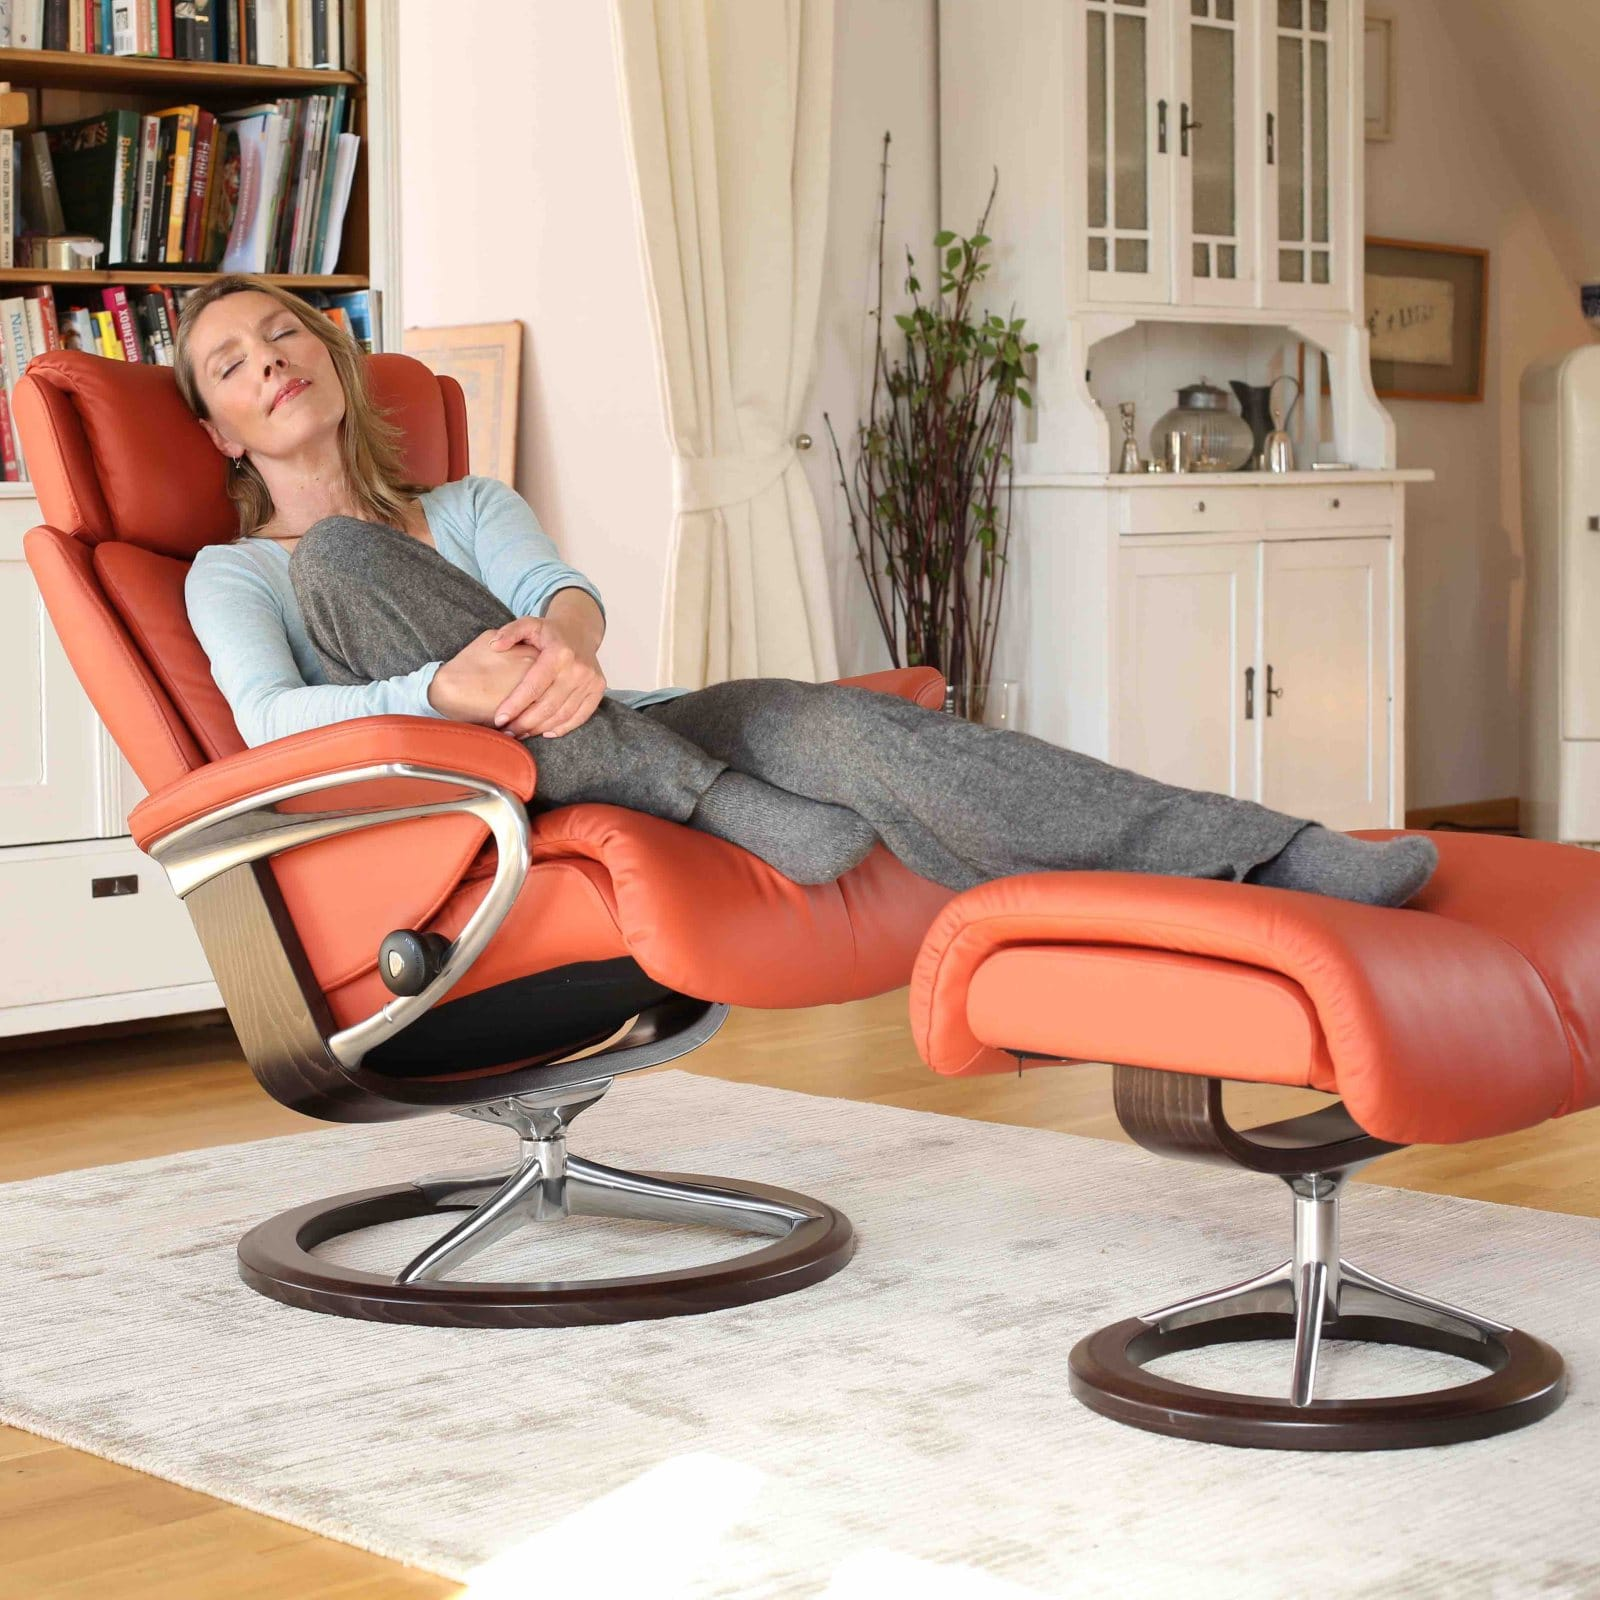 Stressless Magic M Stressless Sessel Magic Leder Paloma Henna Signature Gestell Braun Mit Hocker